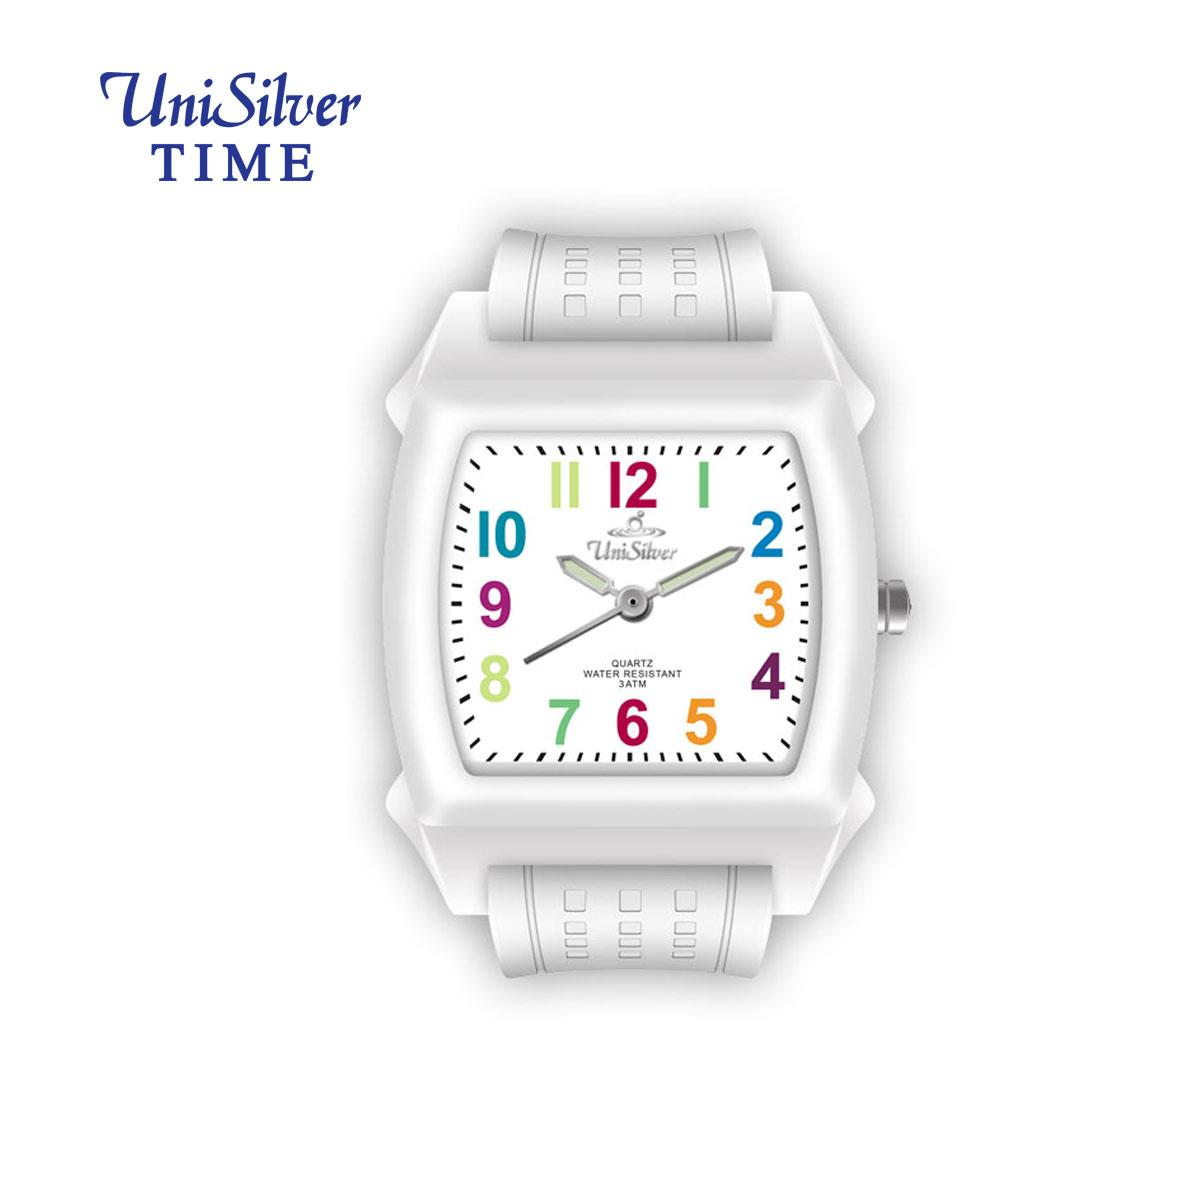 10f6a1a2b UniSilver TIME Colorfun Childrens White / Multicolored Analog Rubber Watch  KW1528-1001 Philippines